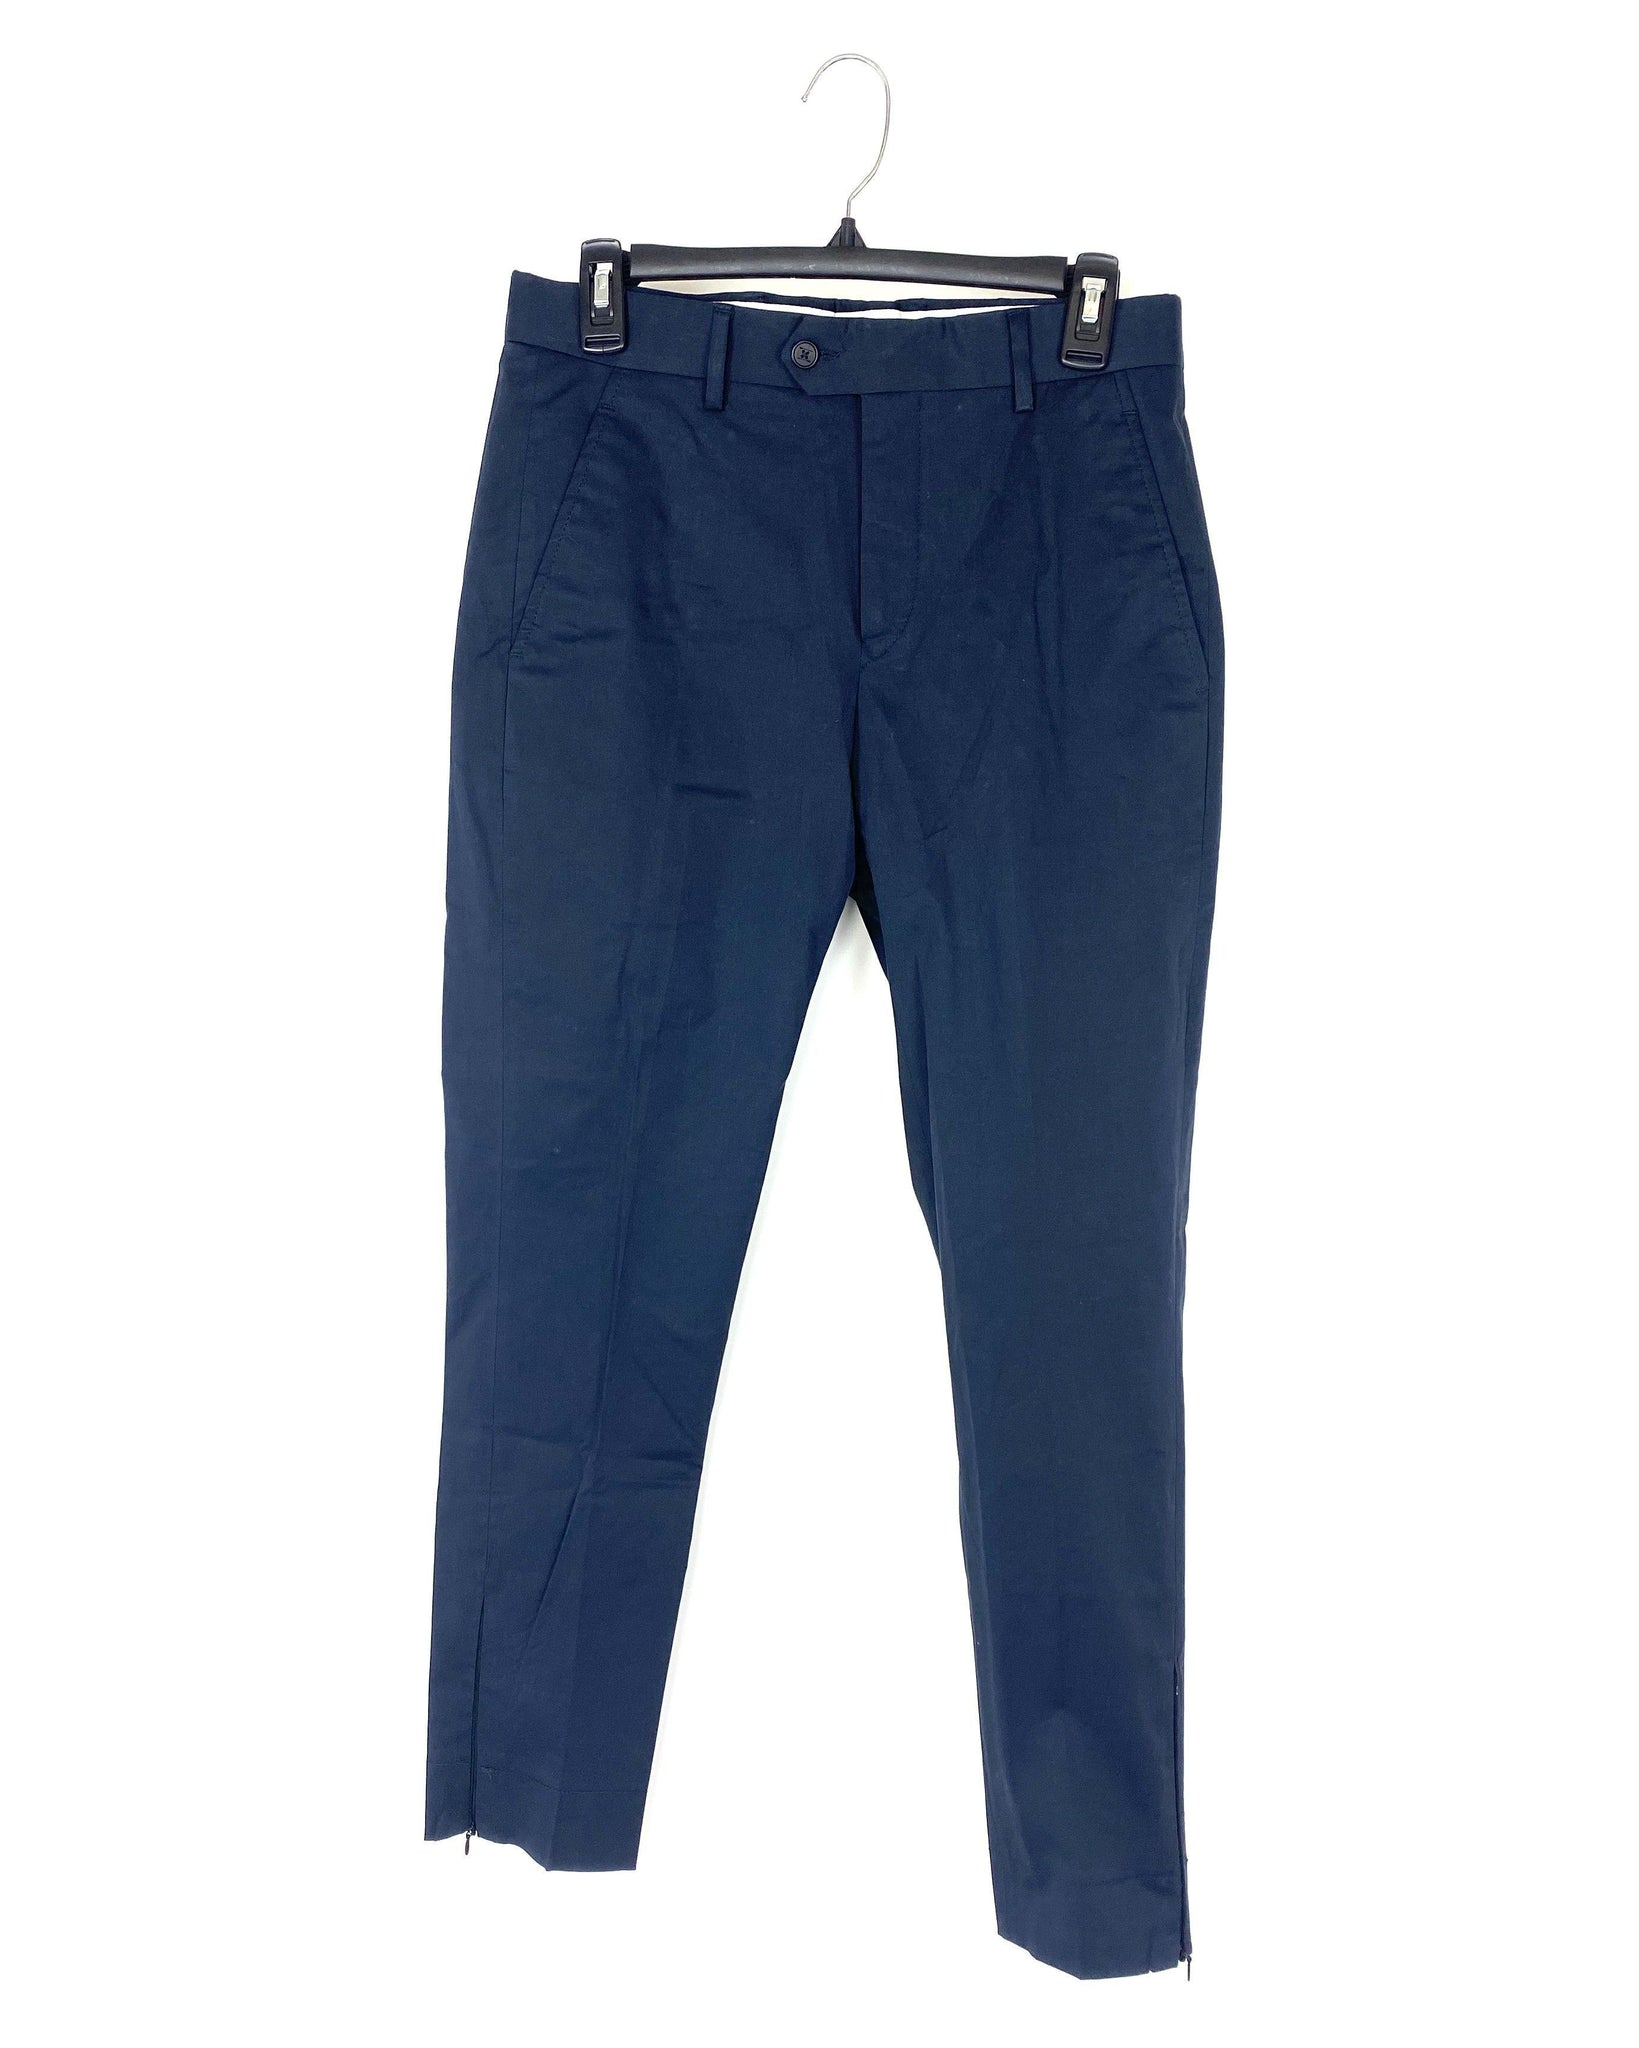 Uri Minkoff (UniSex) Navy Pants - Size 30M, 32M, 36M, Small(Womens), Medium(Womens), Large (Womens)